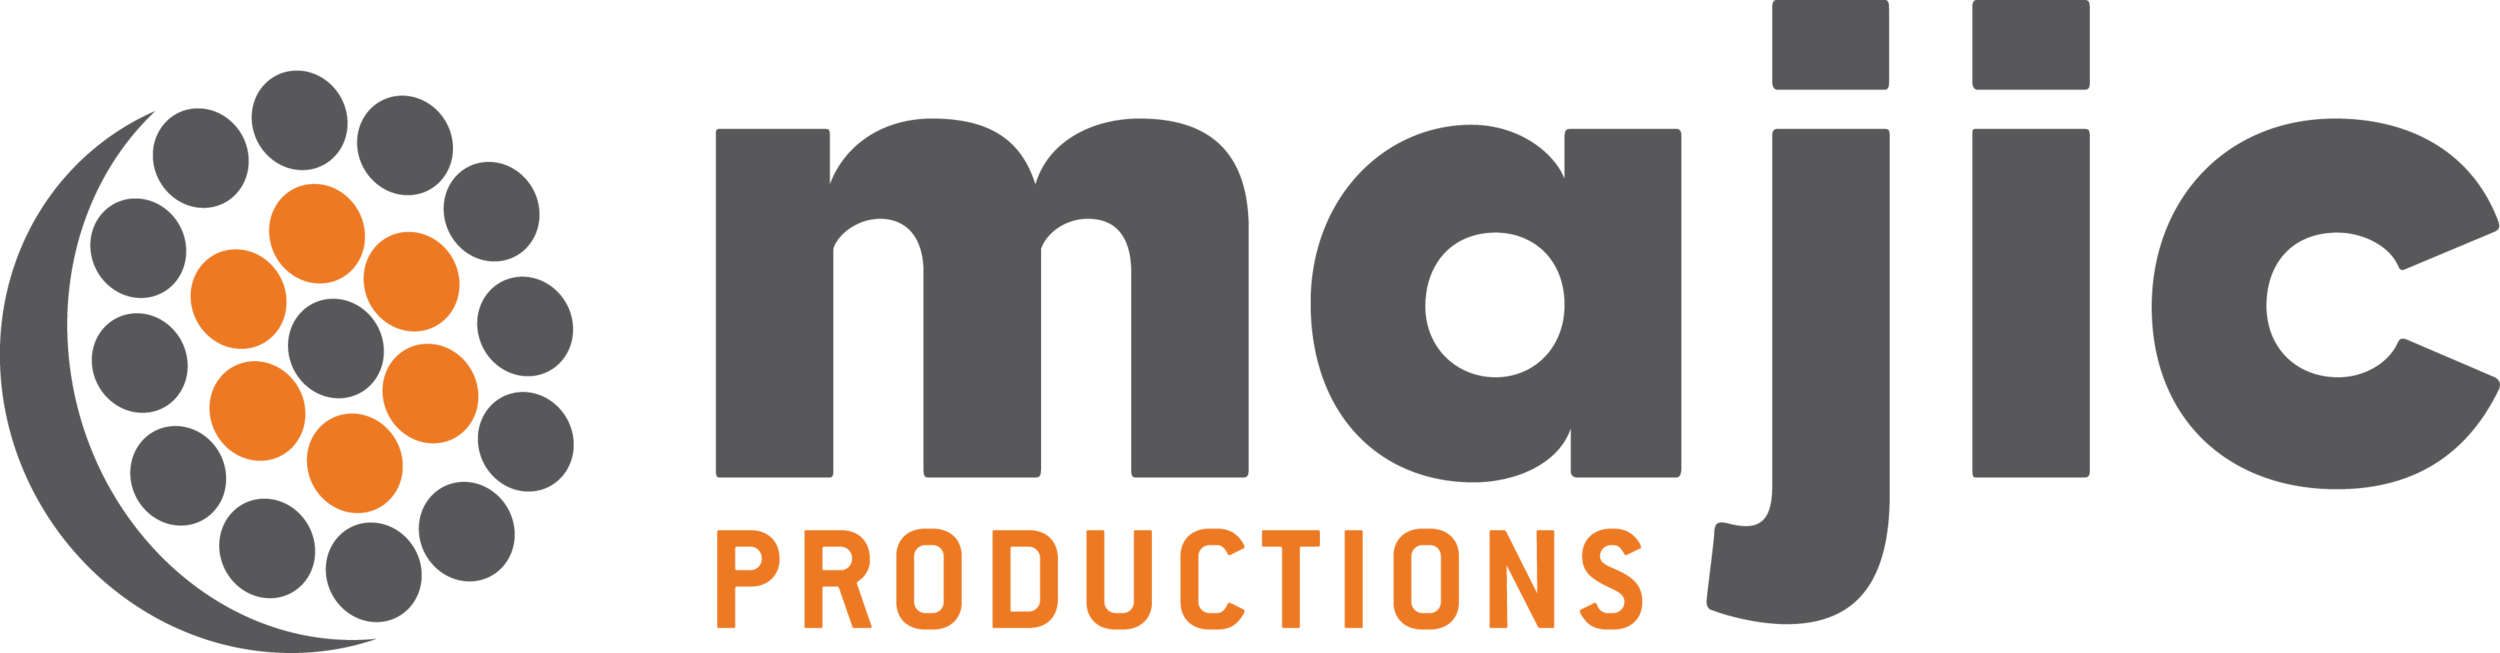 Majic Productions.png